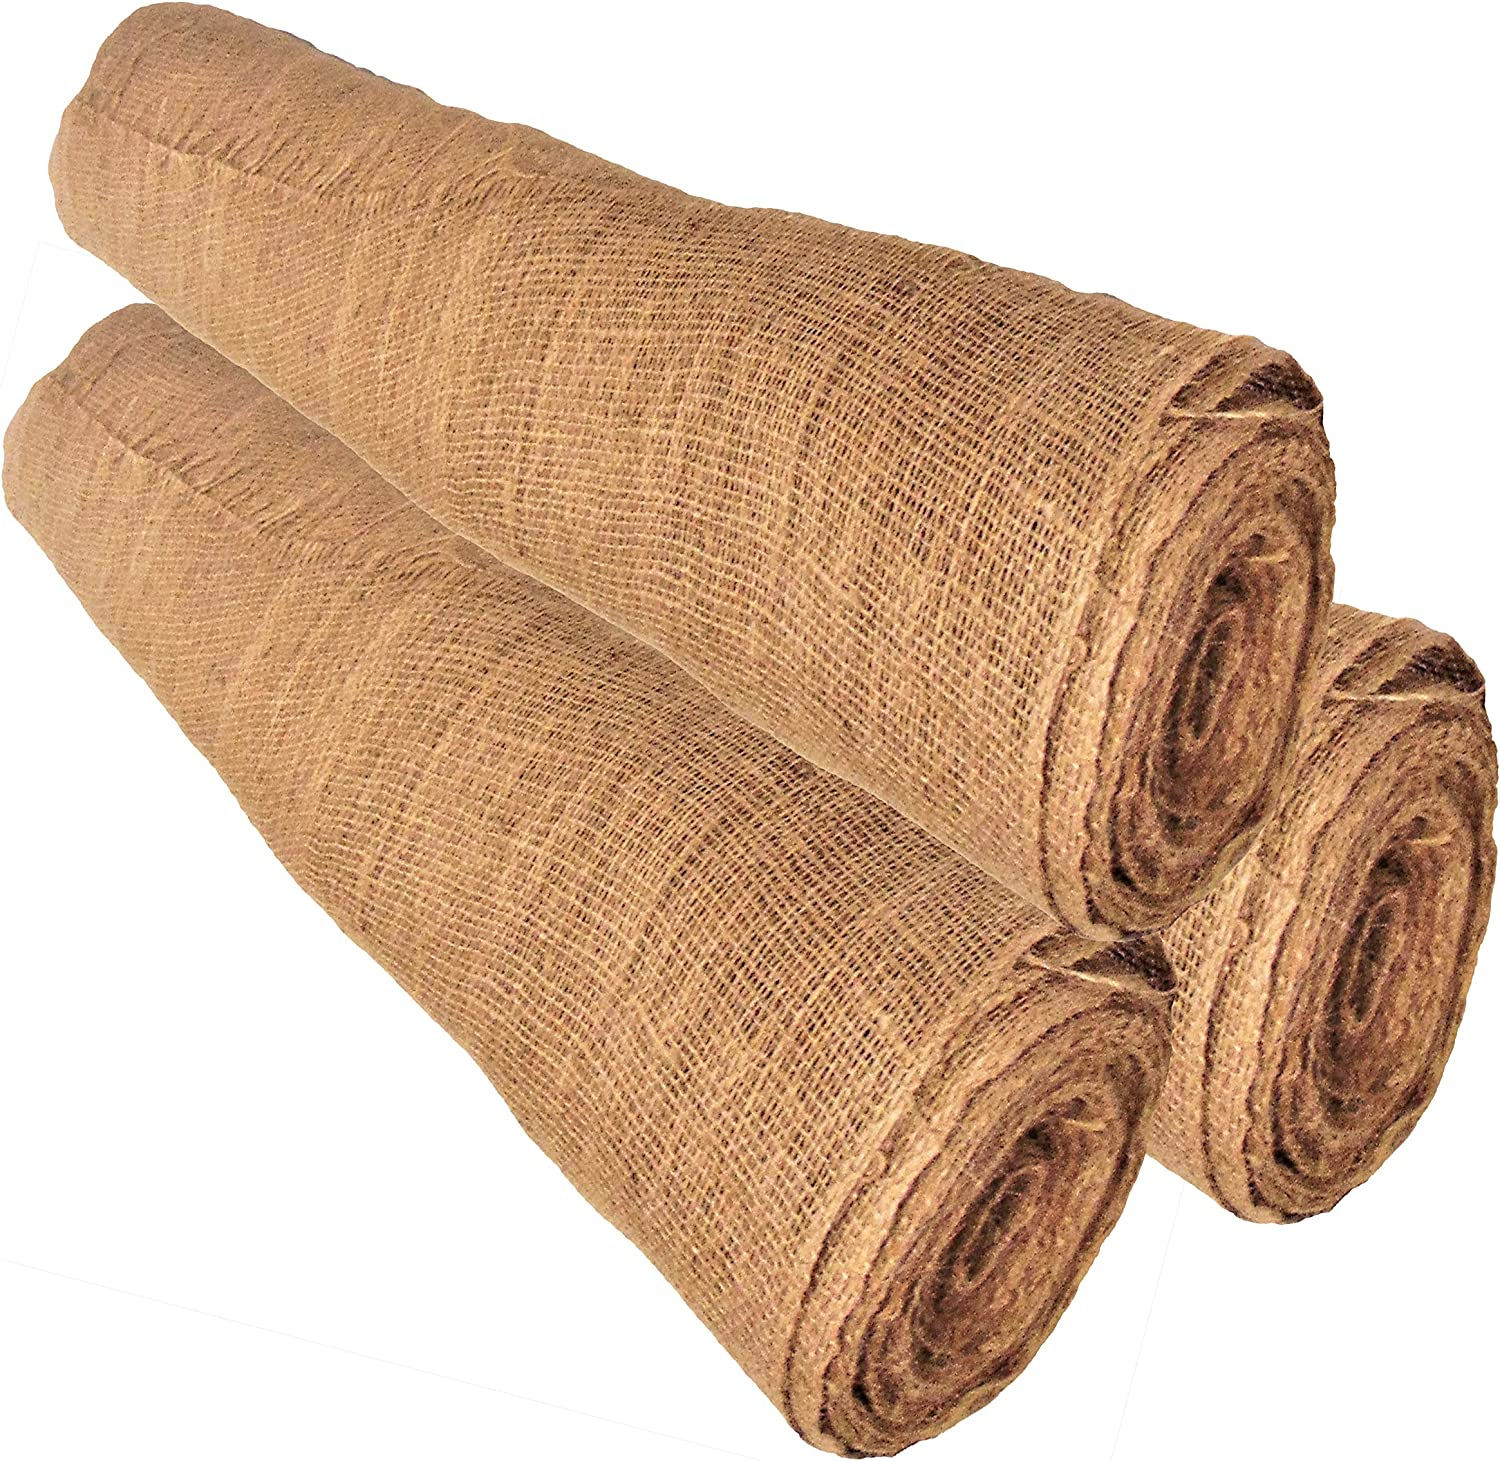 Garden Weed Barrier Heavy 7oz Landscaping 36 inches Wide 36 /× 16-Yards Burlap Fabric Eco-Friendly and Disposable Jute Planter Liner 48 feet Burlap-roll 48 ft